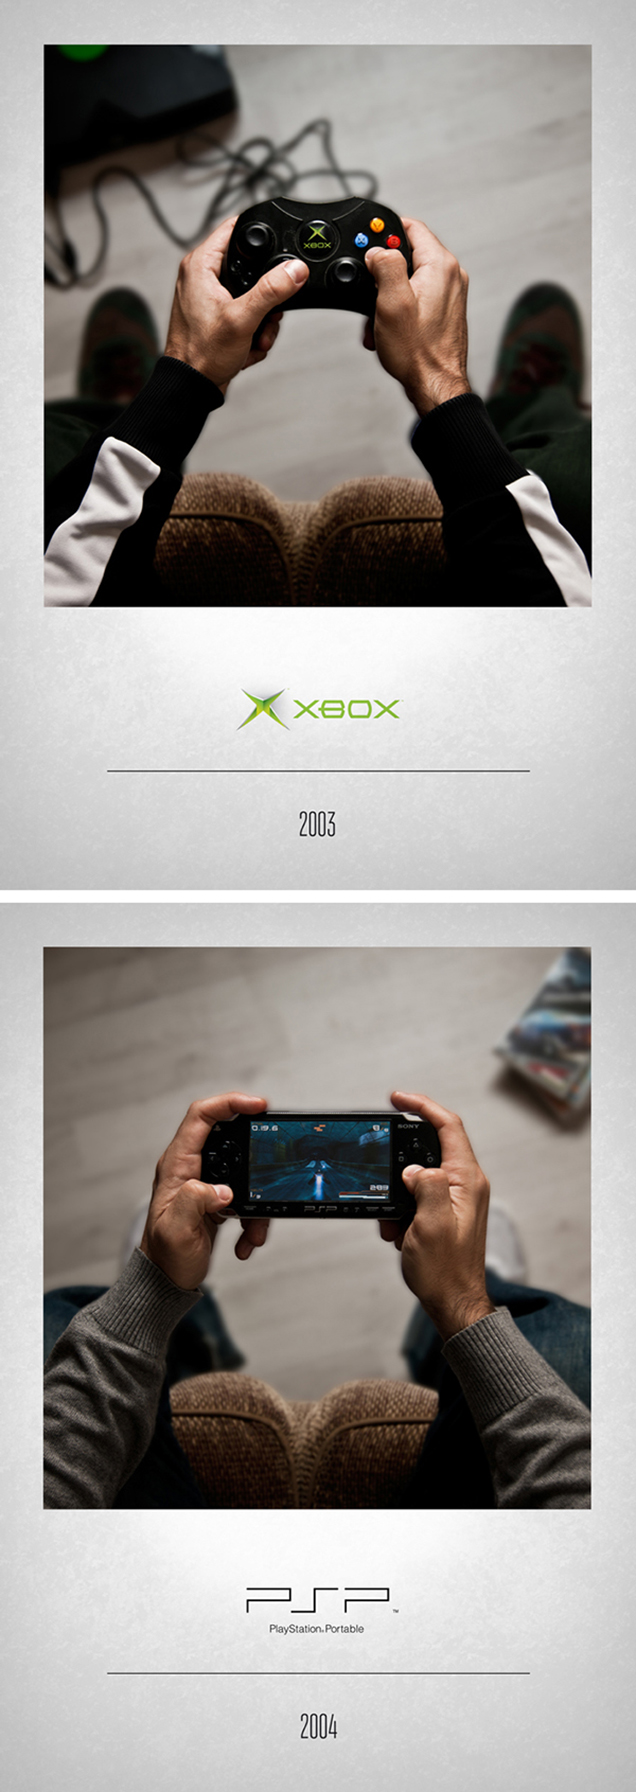 game-consoles-2003-2004.jpg